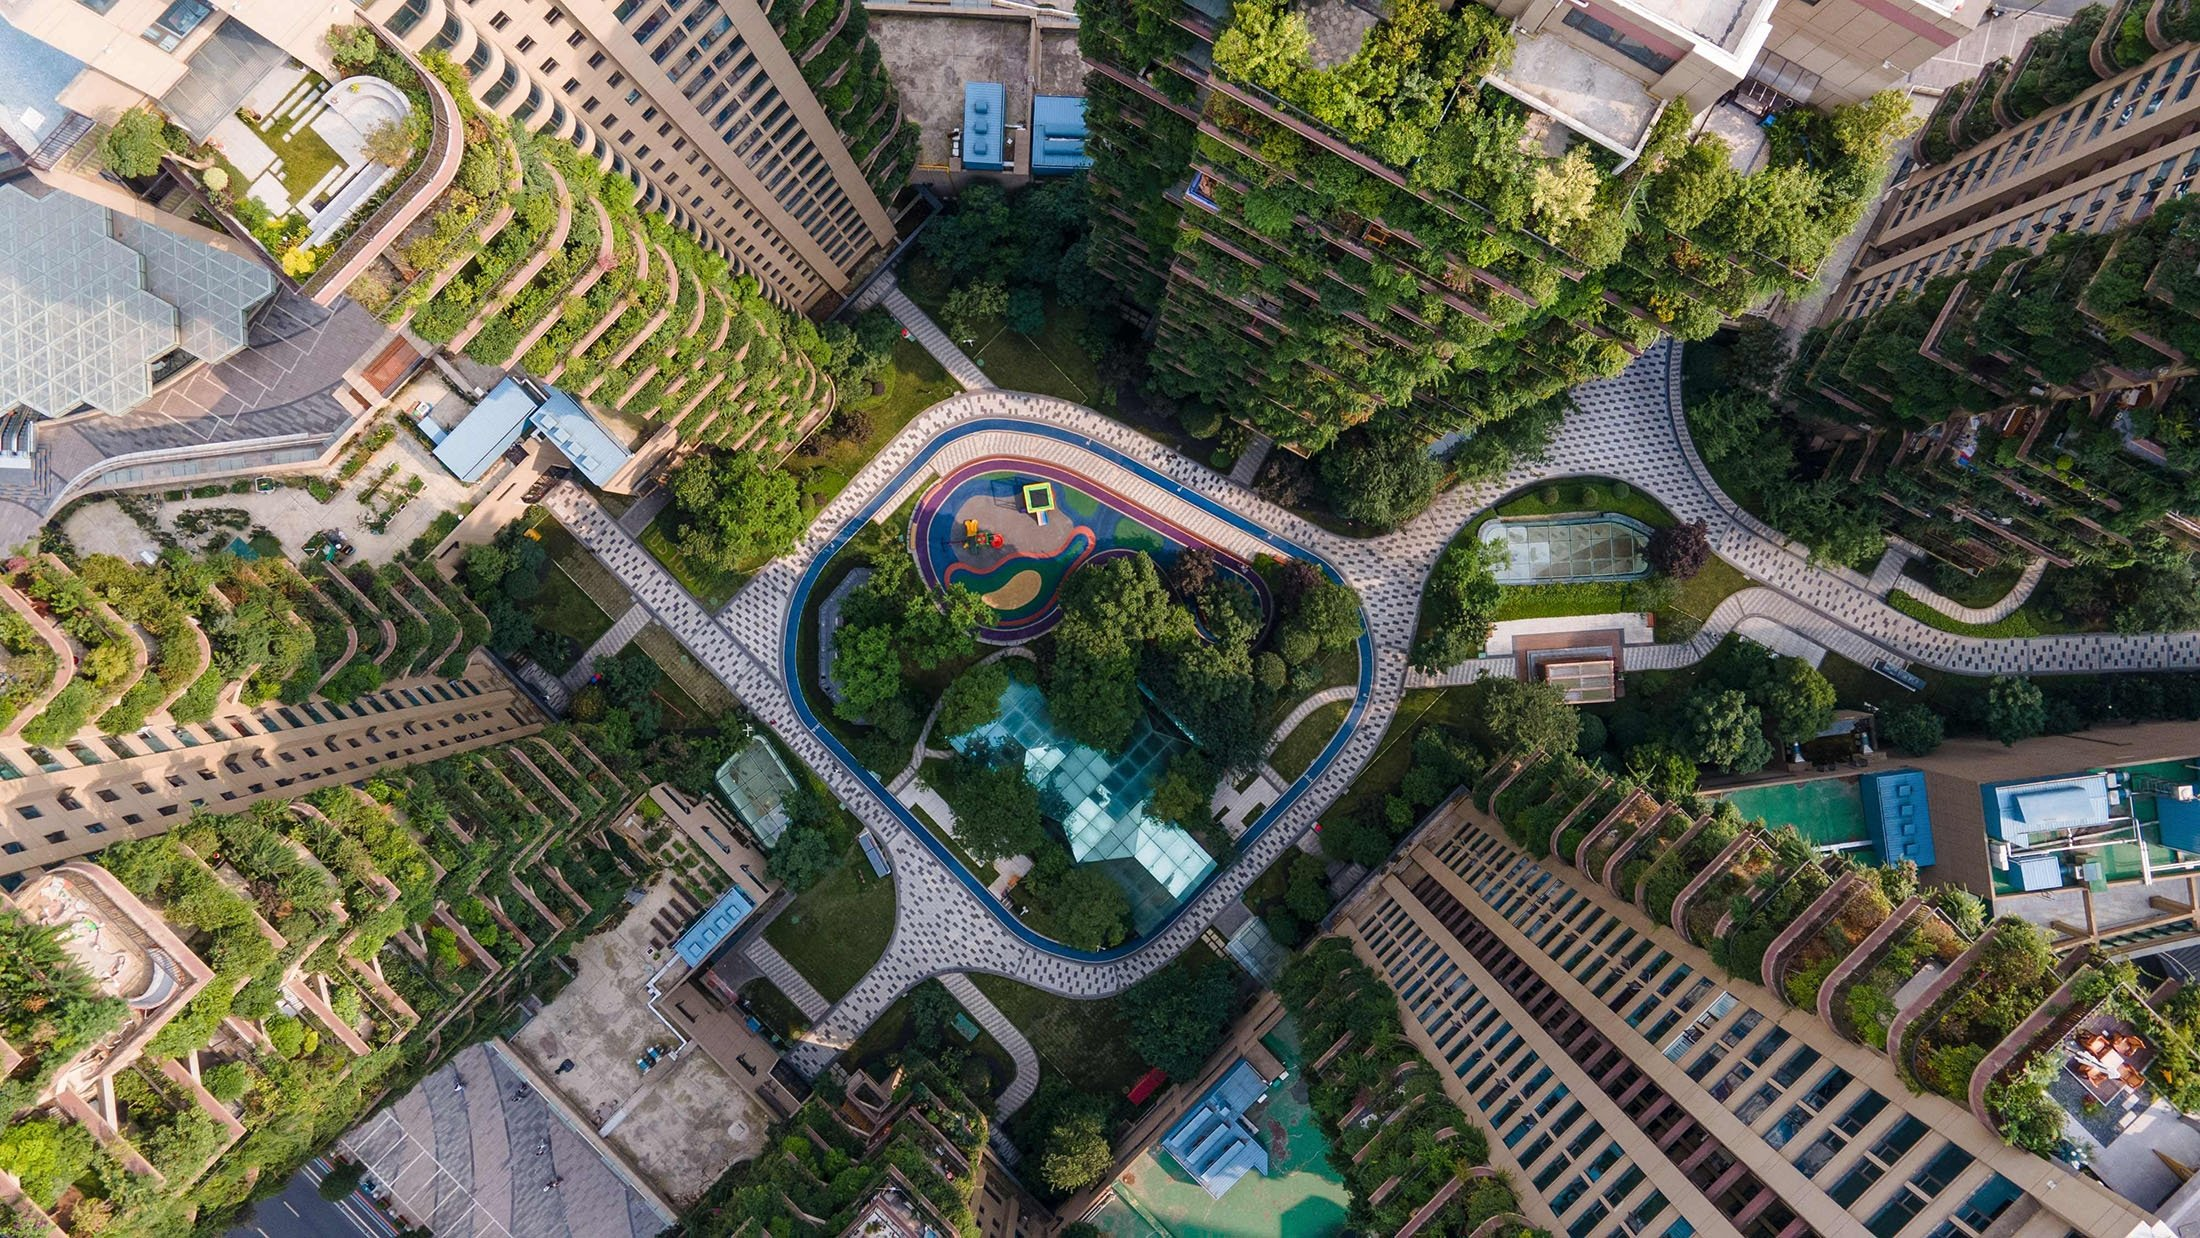 Apartments with balconies covered with plants can be seen at a residential community in Chengdu in China's southwestern Sichuan province, China, July 12, 2021. (AFP Photo)